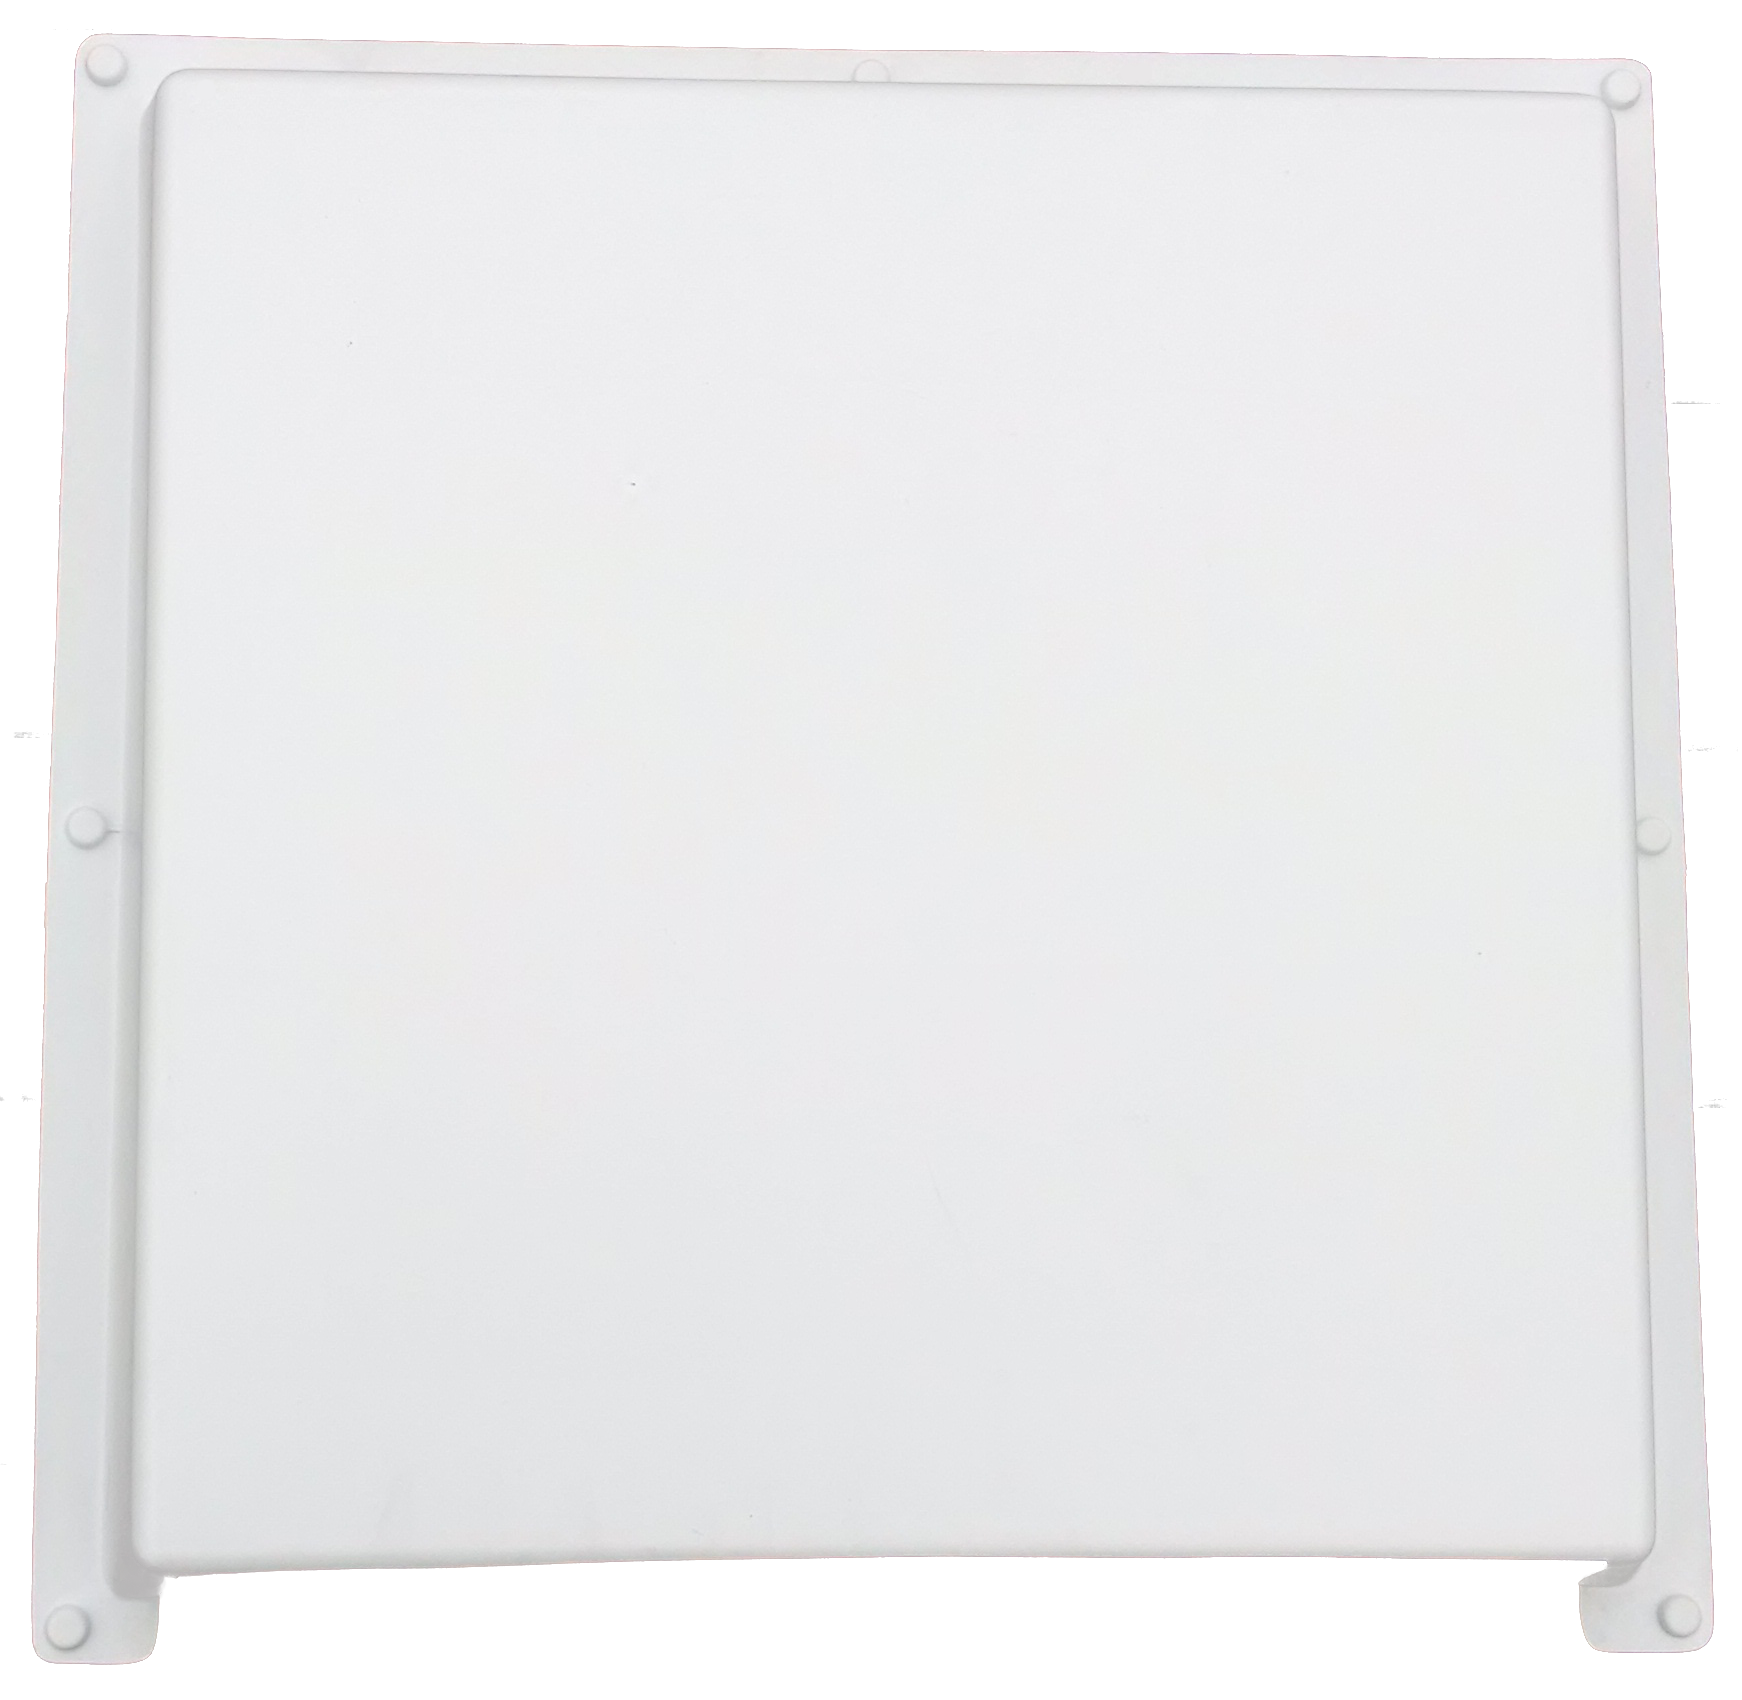 Elima Draft 174 Magnetic Air Deflector Vent Cover For Hvac